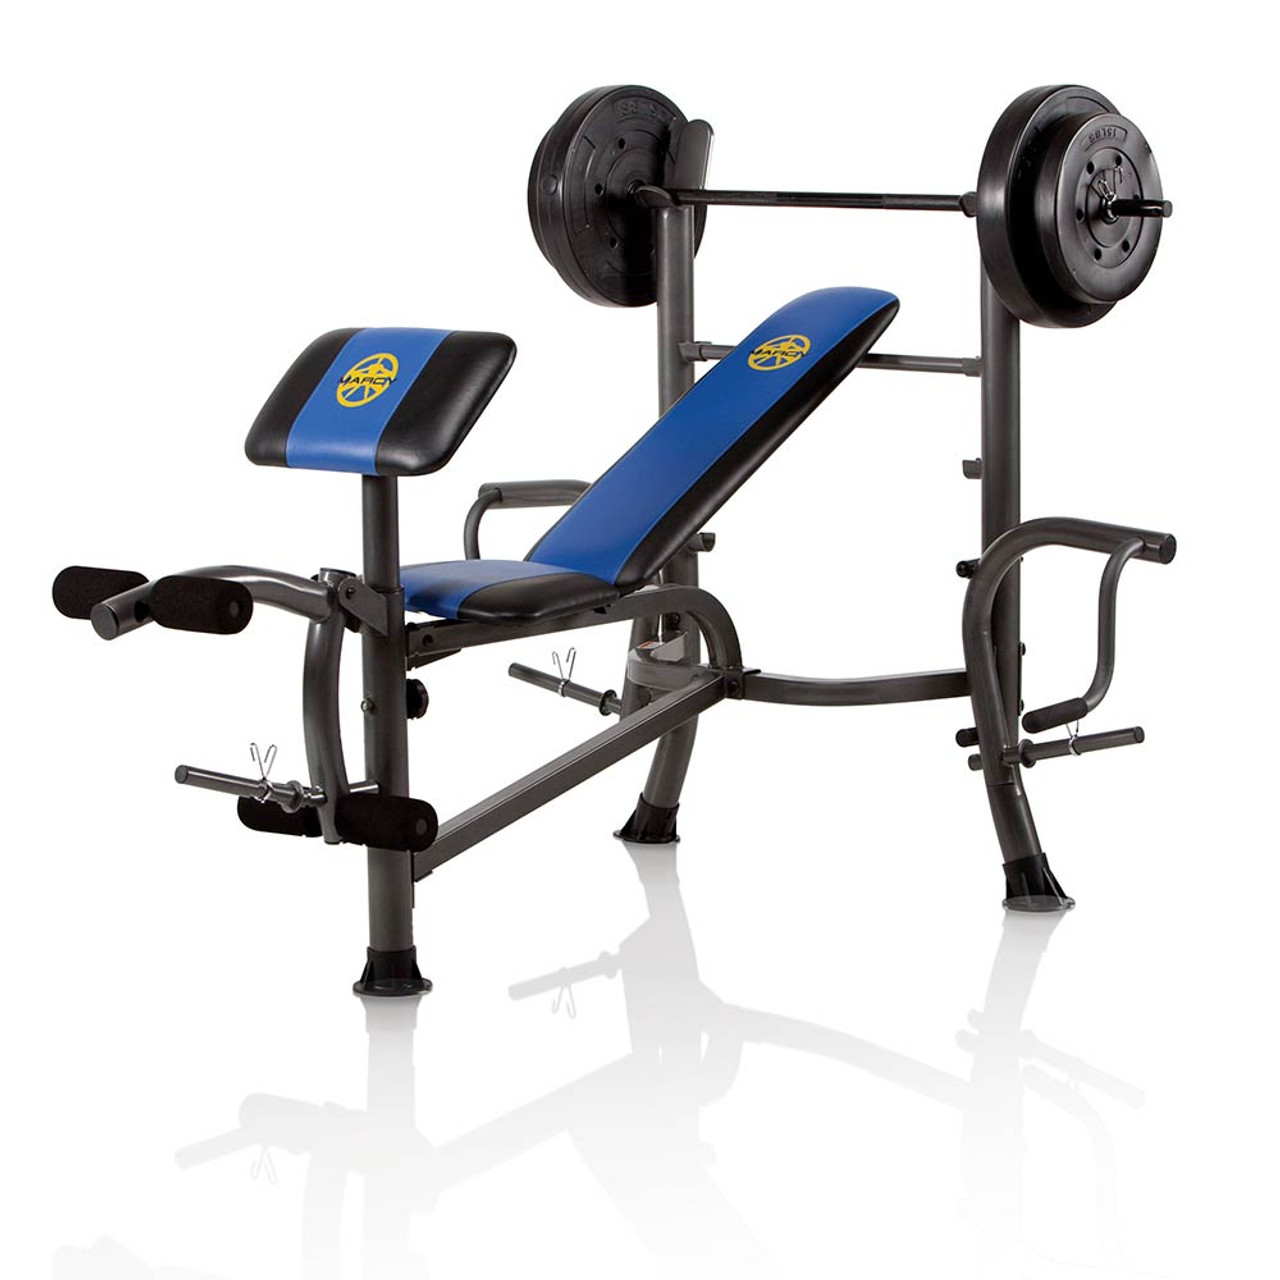 hammerstrength l fitness for strength benches flat hammer facility life olympic and racks workout sale products bench